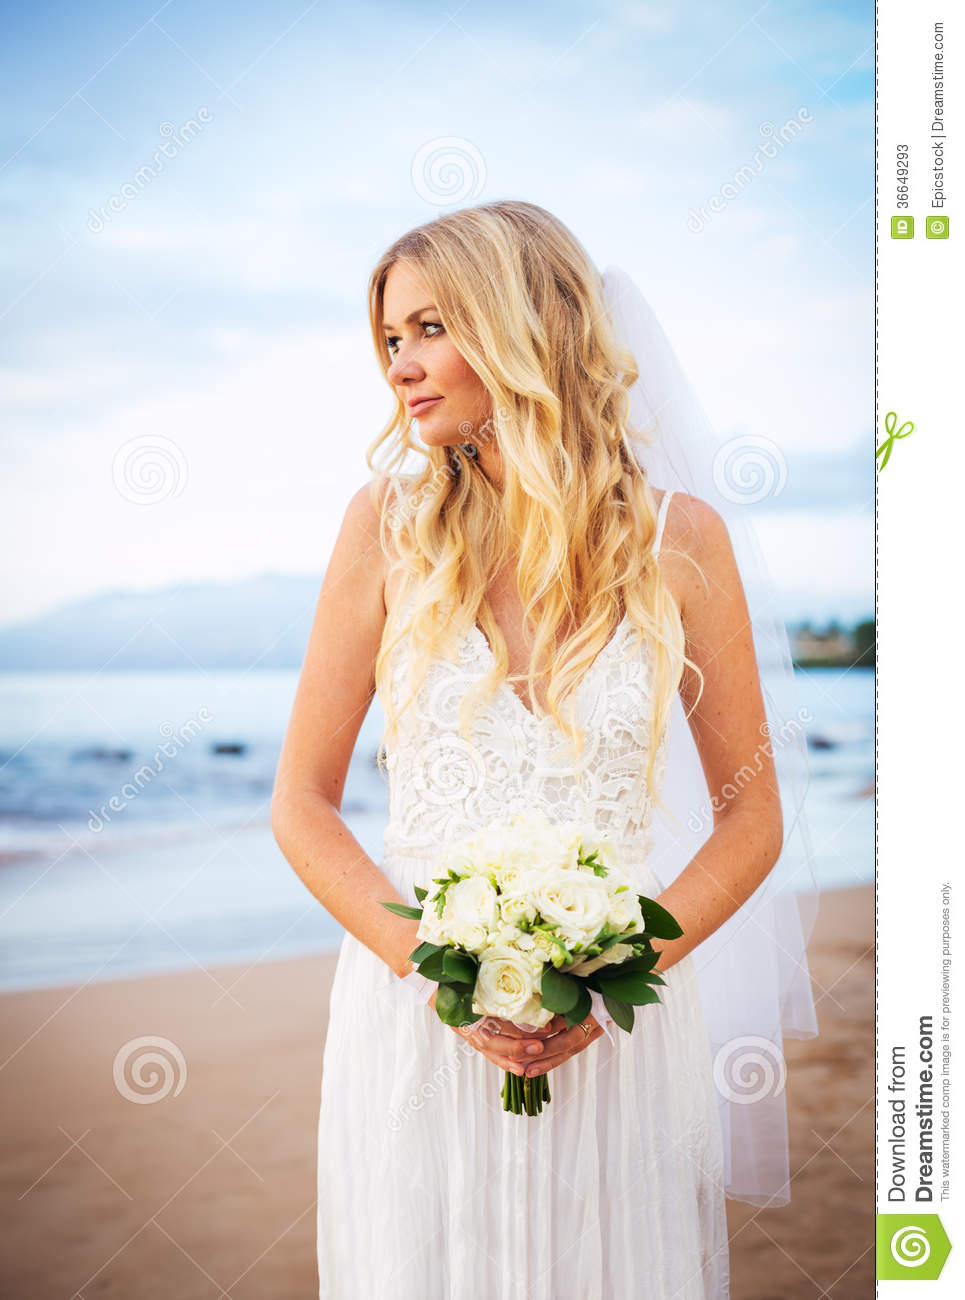 Beautiful Bride In Wedding Dress With Flowers At Sunset On Beaut ...